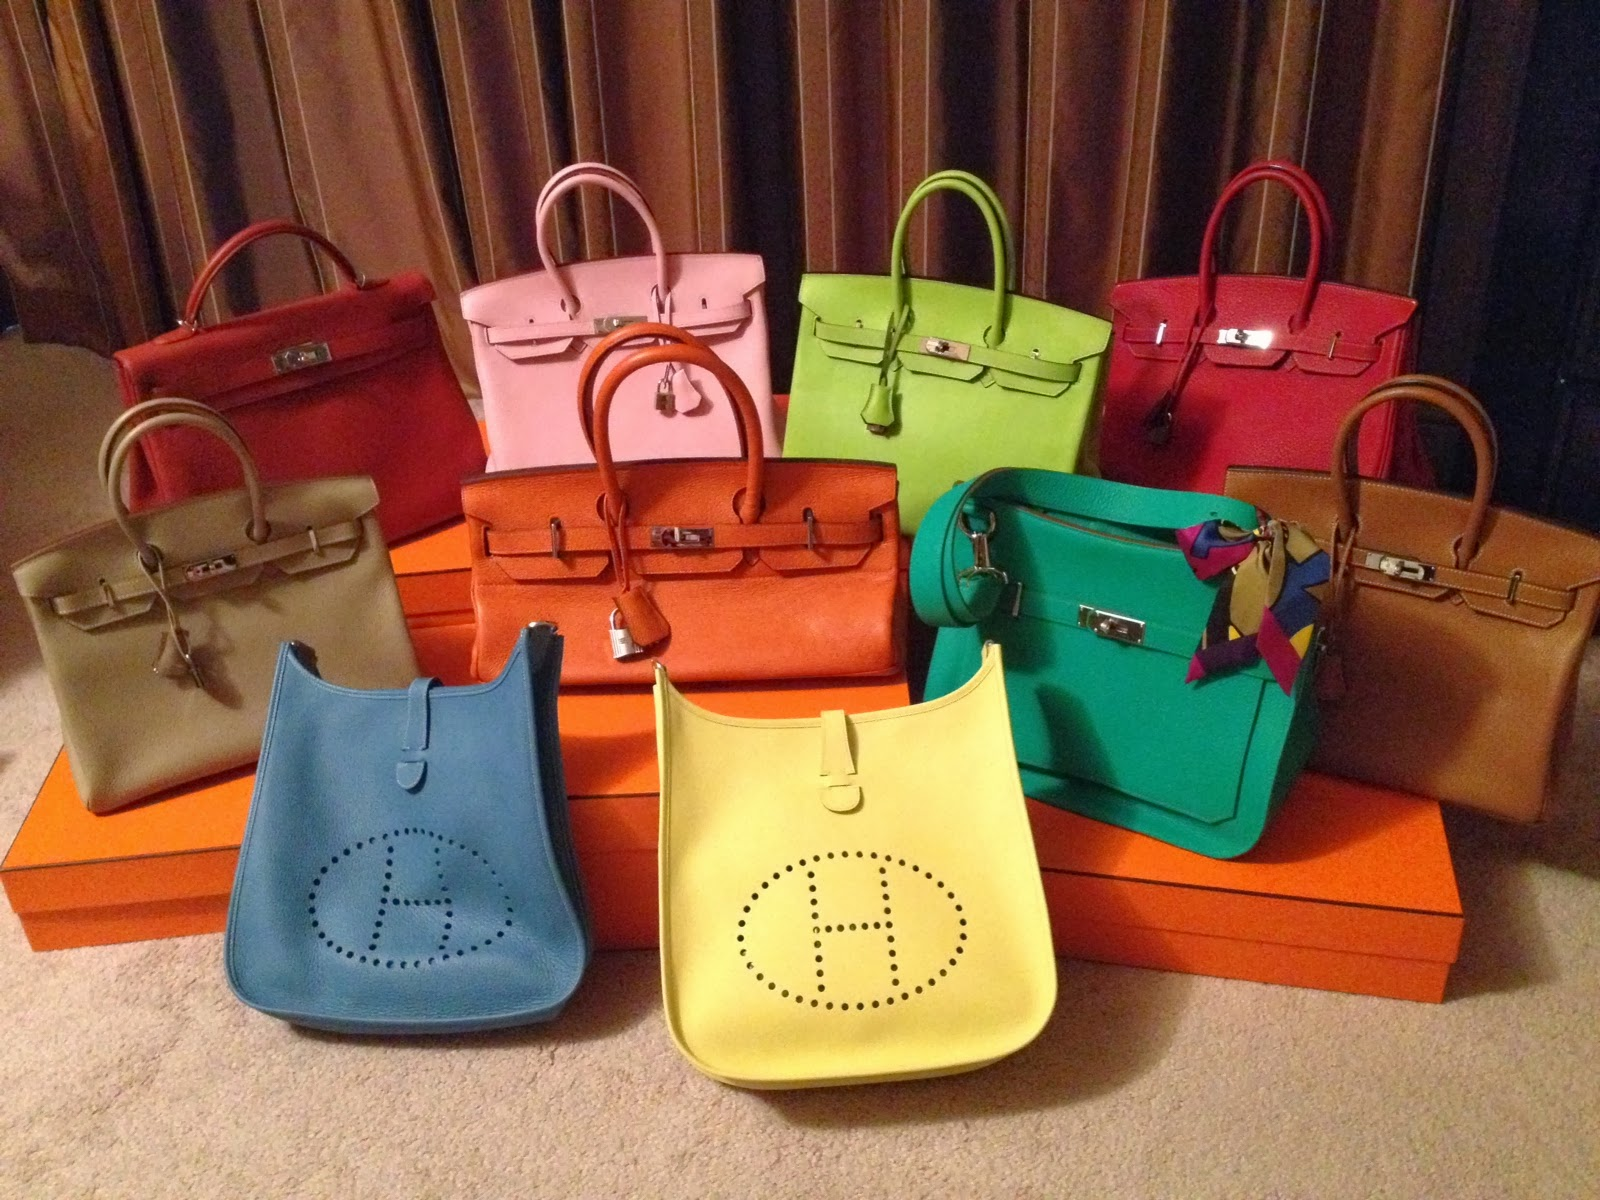 hermes bucket bag - My Birkin Blog: September 2013